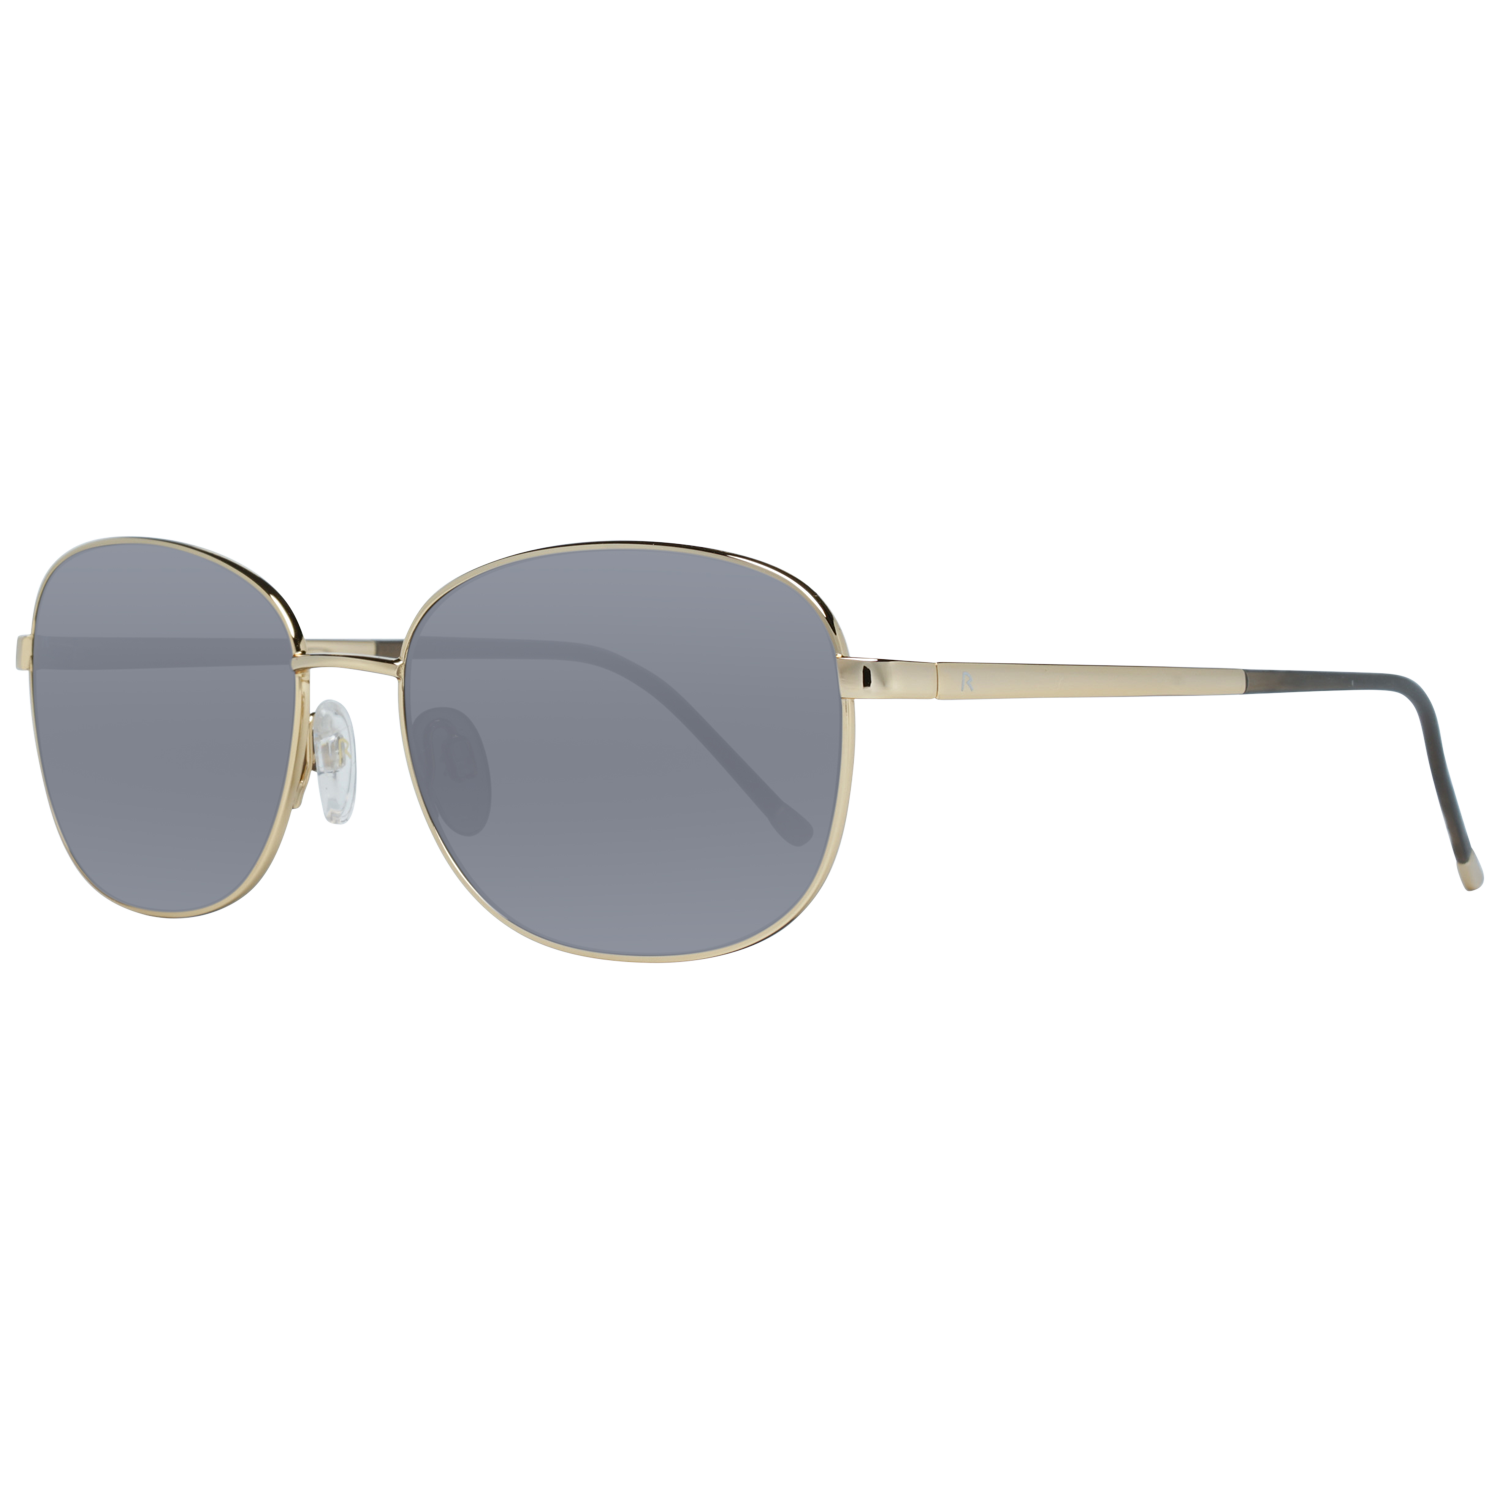 Rodenstock Sunglasses R7410 A 57 Gold